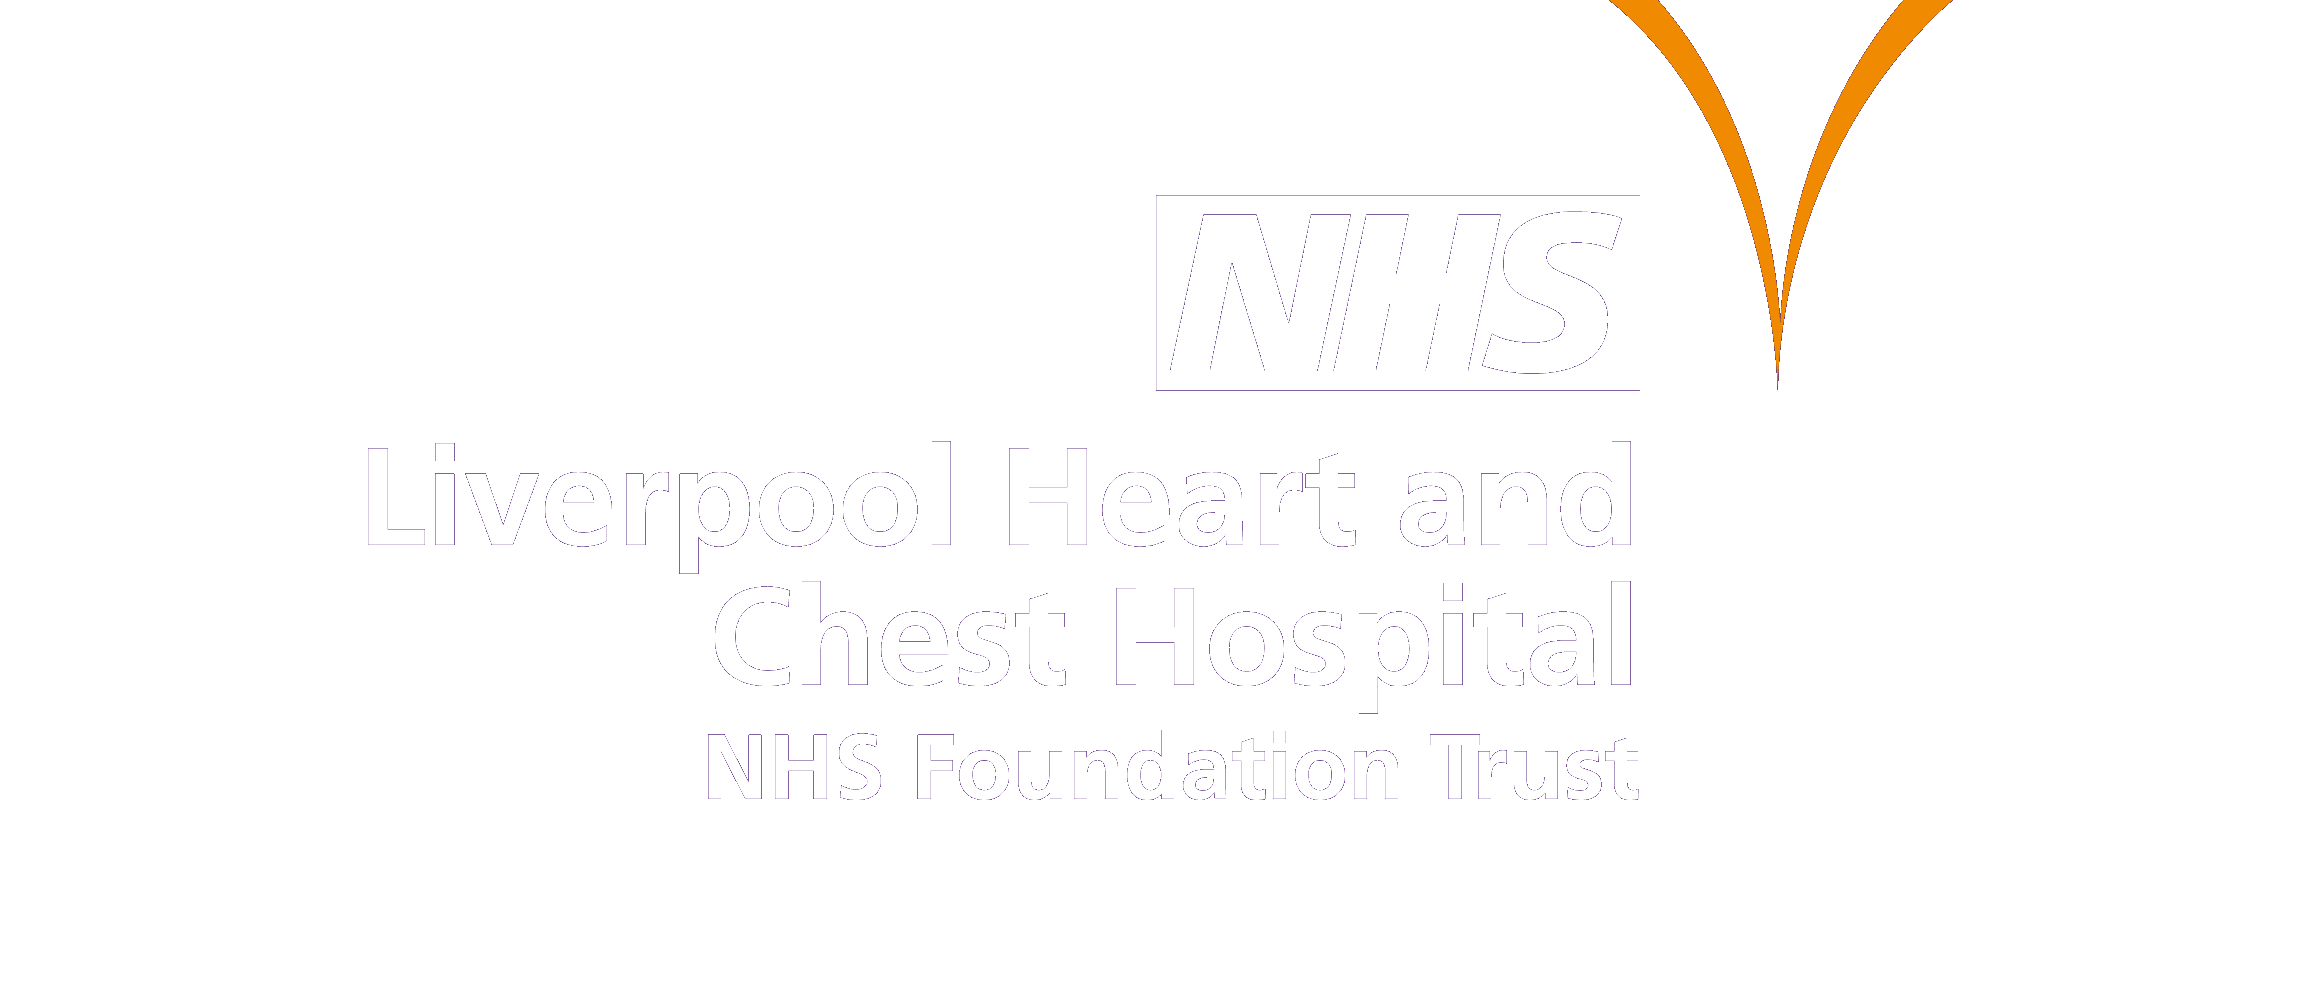 Liverpool Heart and Chest Hospital NHS Foundation Trust